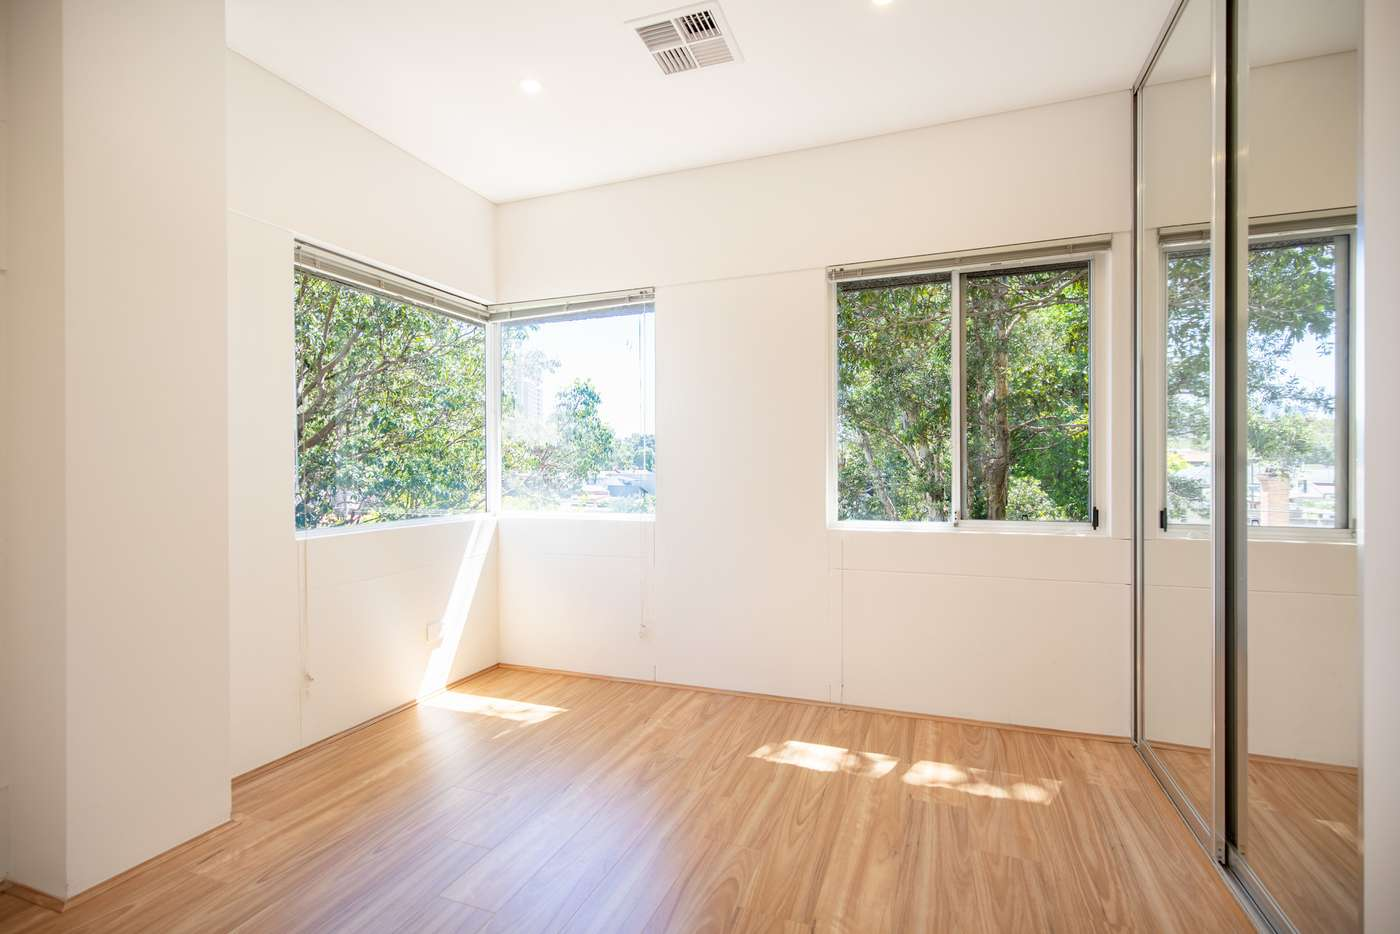 Sixth view of Homely apartment listing, 25/189 Phillip Street, Waterloo NSW 2017